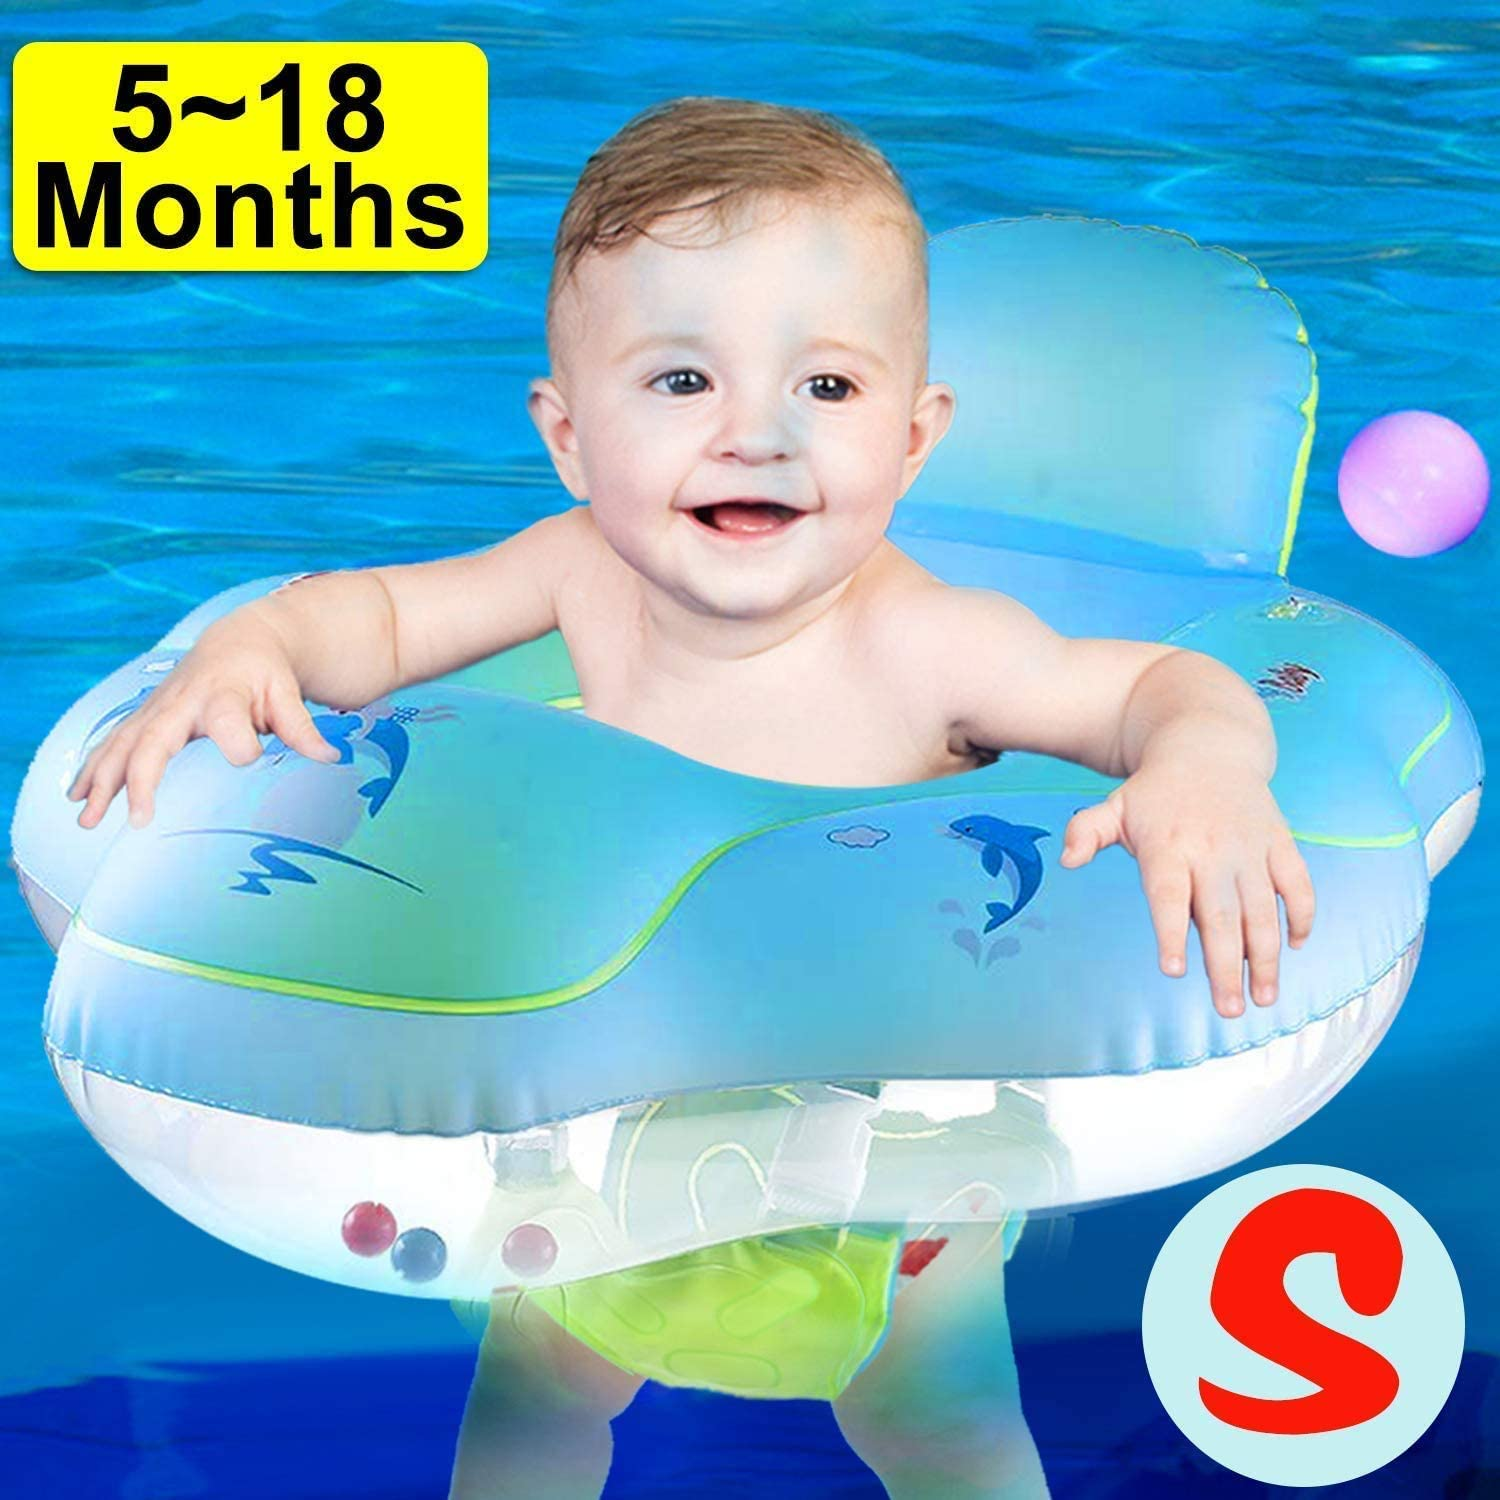 AMENON 【Anti Rollover】 Baby Pool Floats Swimming Ring with Safe Seat & Backrest, Inflatable Baby Swimming Float, Swimming Pool Accessories-Newborn Baby Kid Toddler (S-5-18Months (11-26.5lbs)) (S)